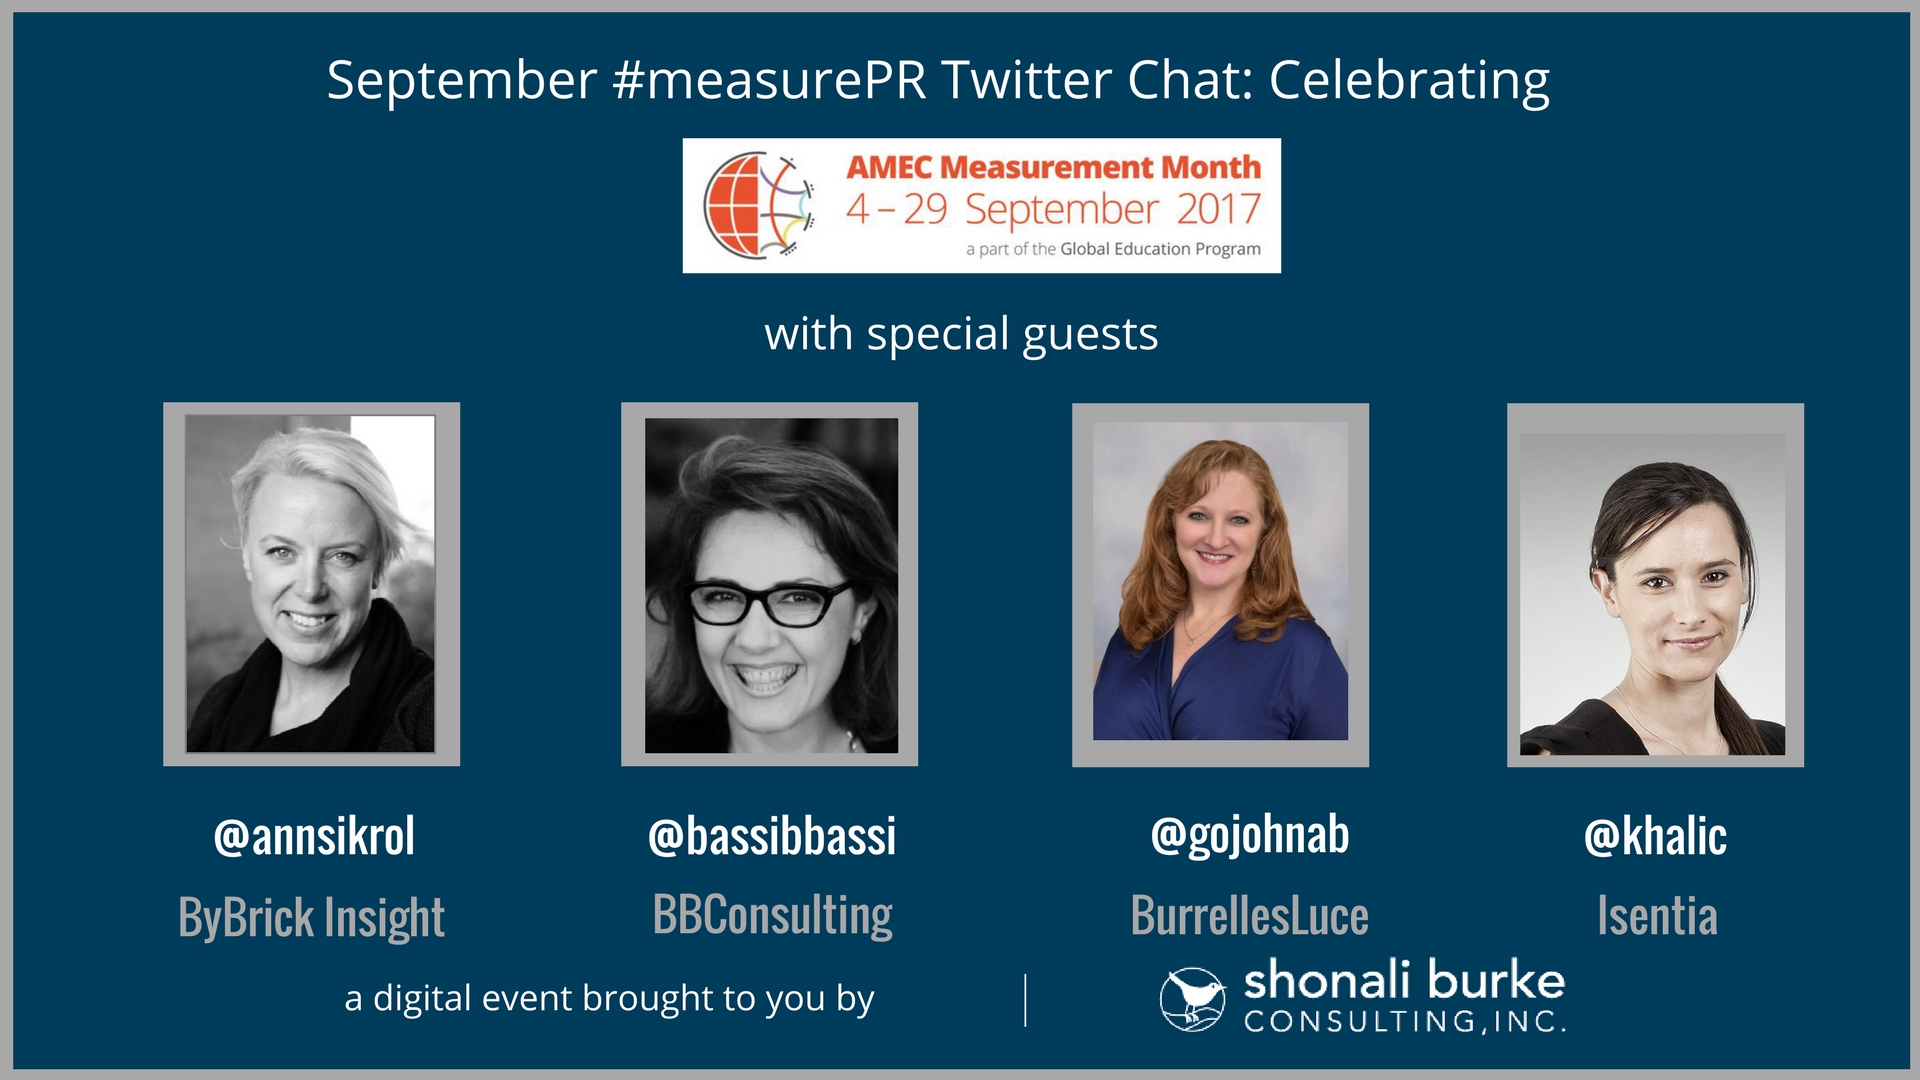 #measurePR Recap (September 2017): Celebrating AMEC Measurement Month 2017